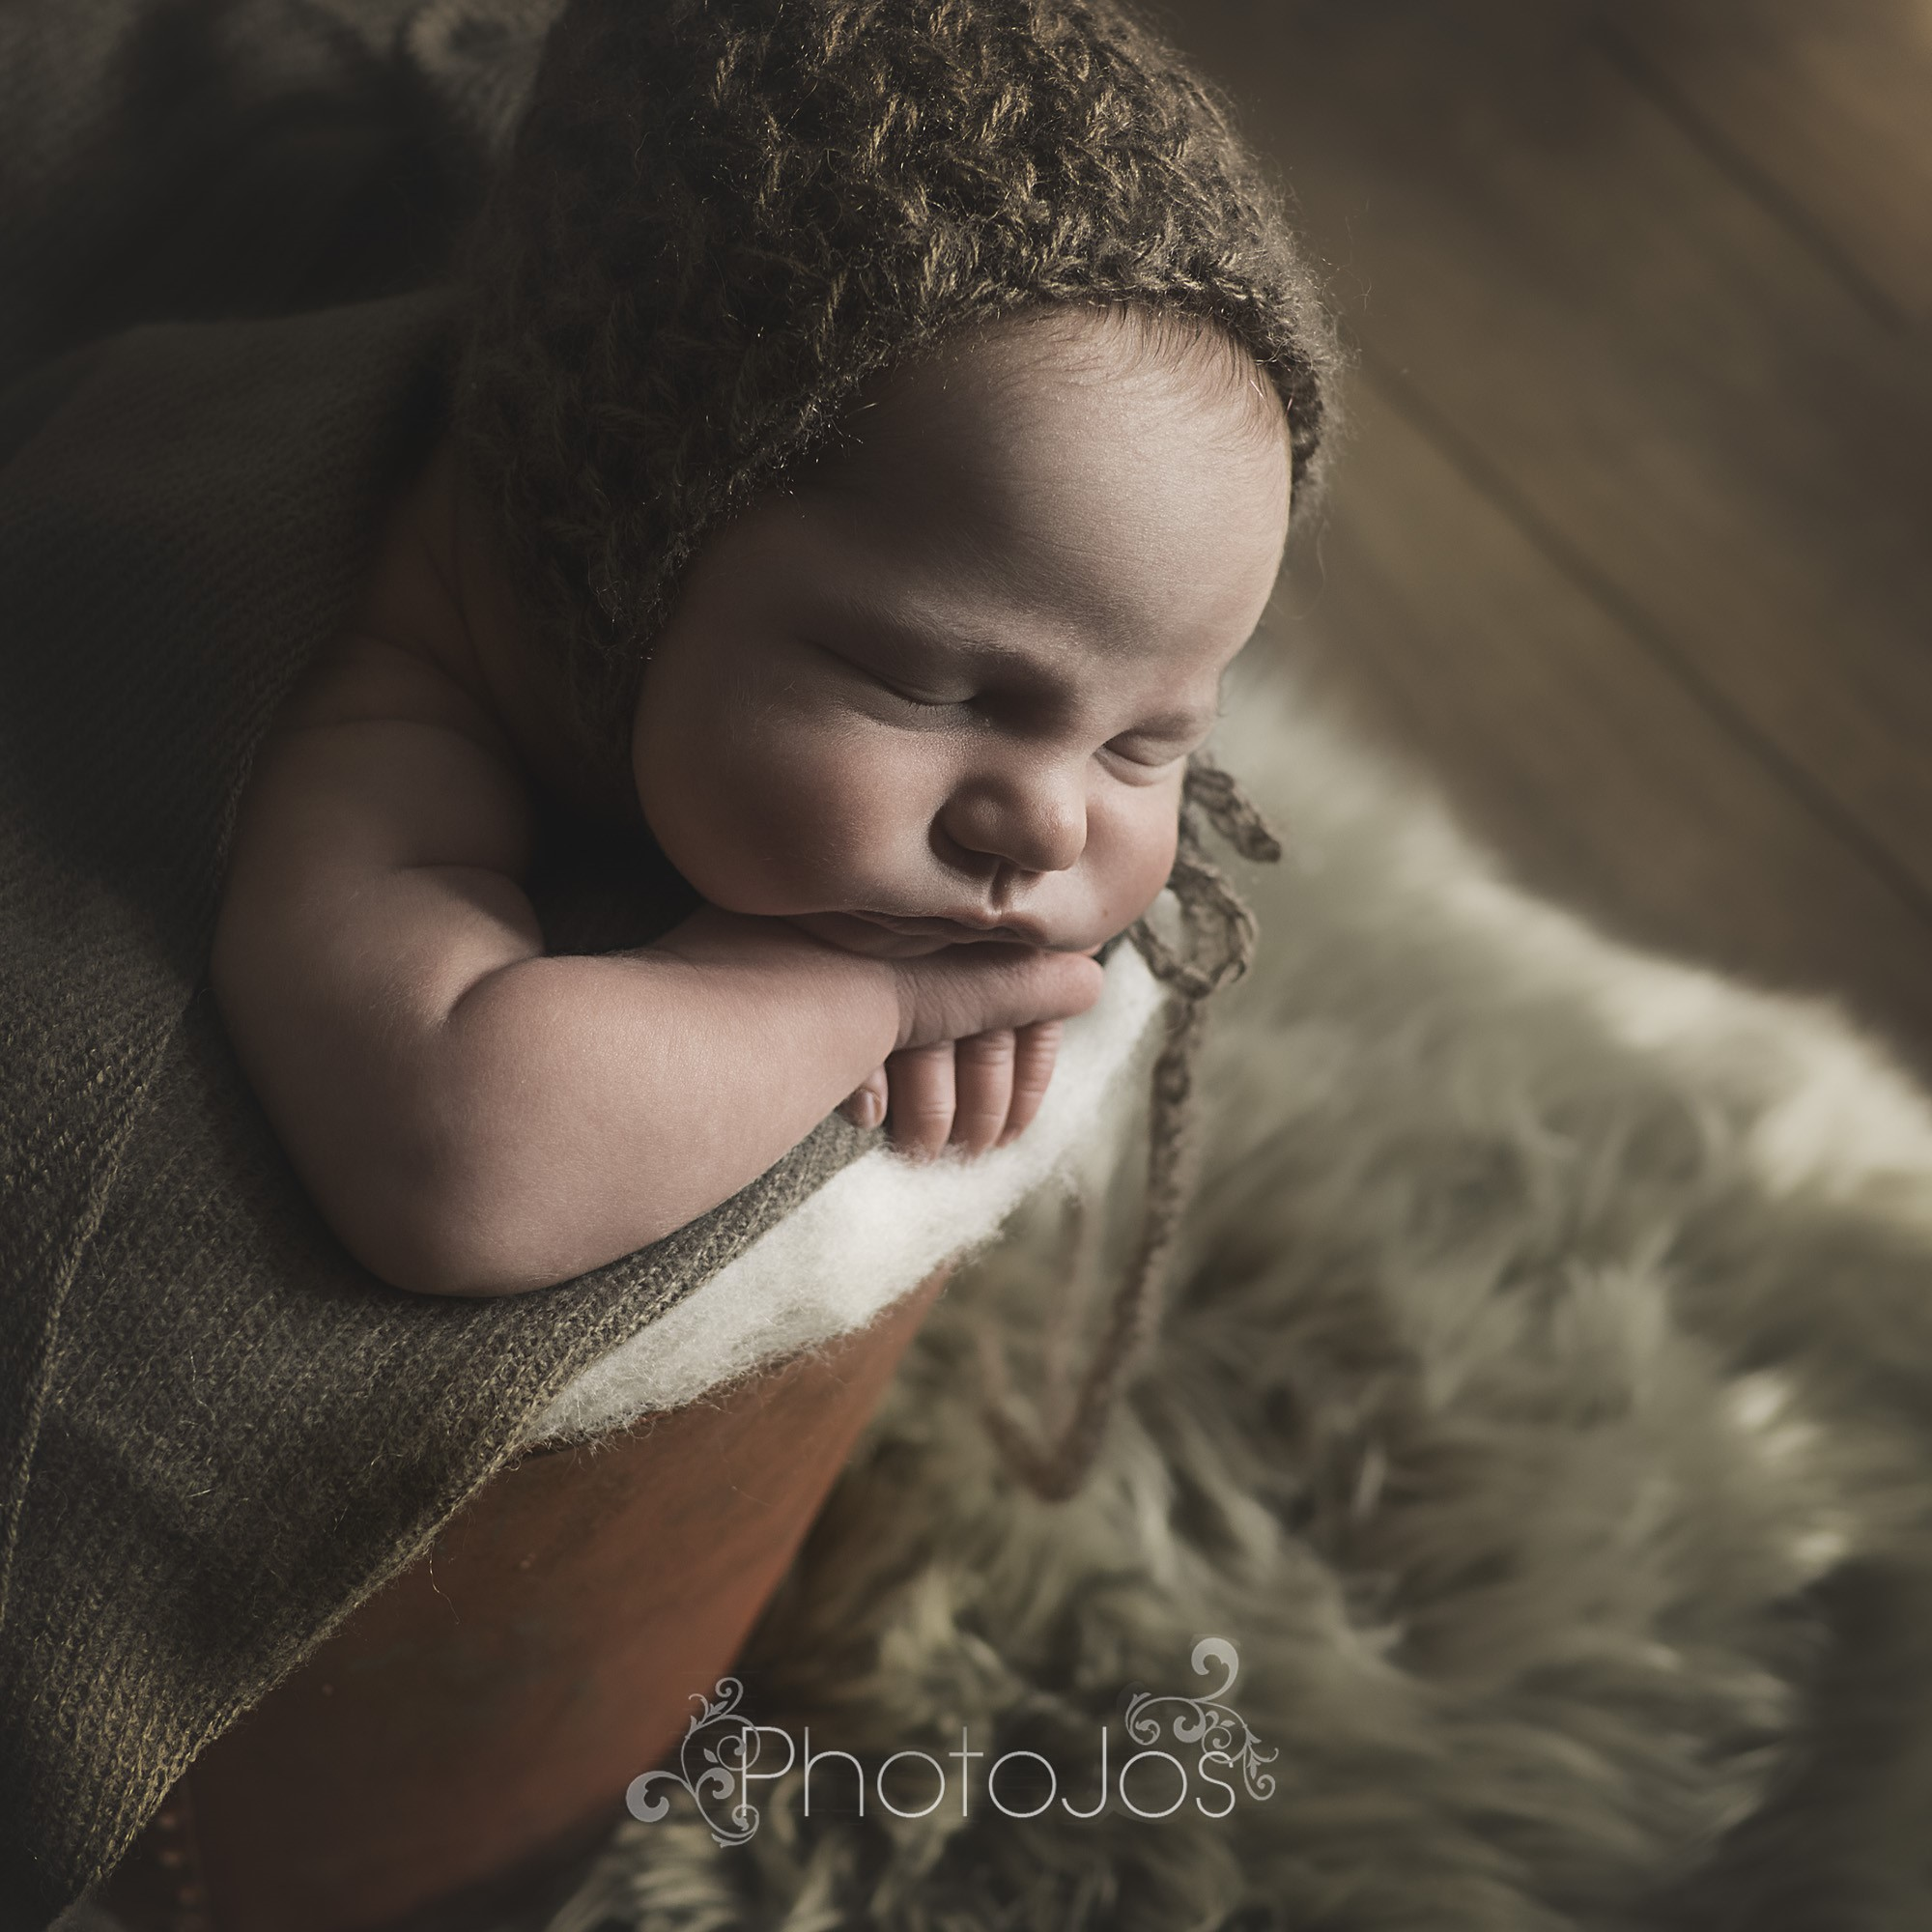 A sleeping baby during the newborn photography training